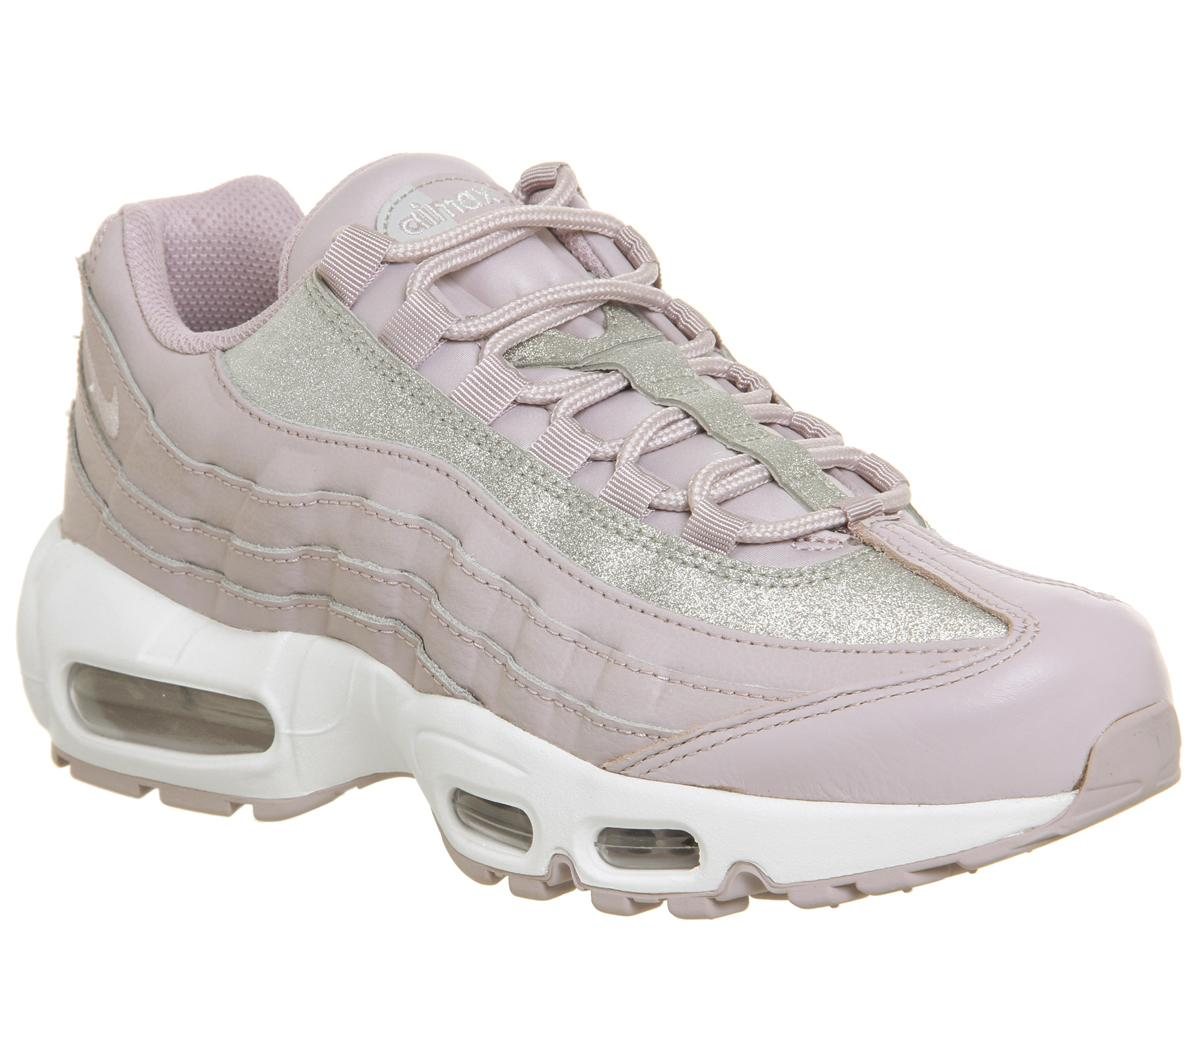 Nike Air Max 95 Trainers Glitter Pink - Hers trainers